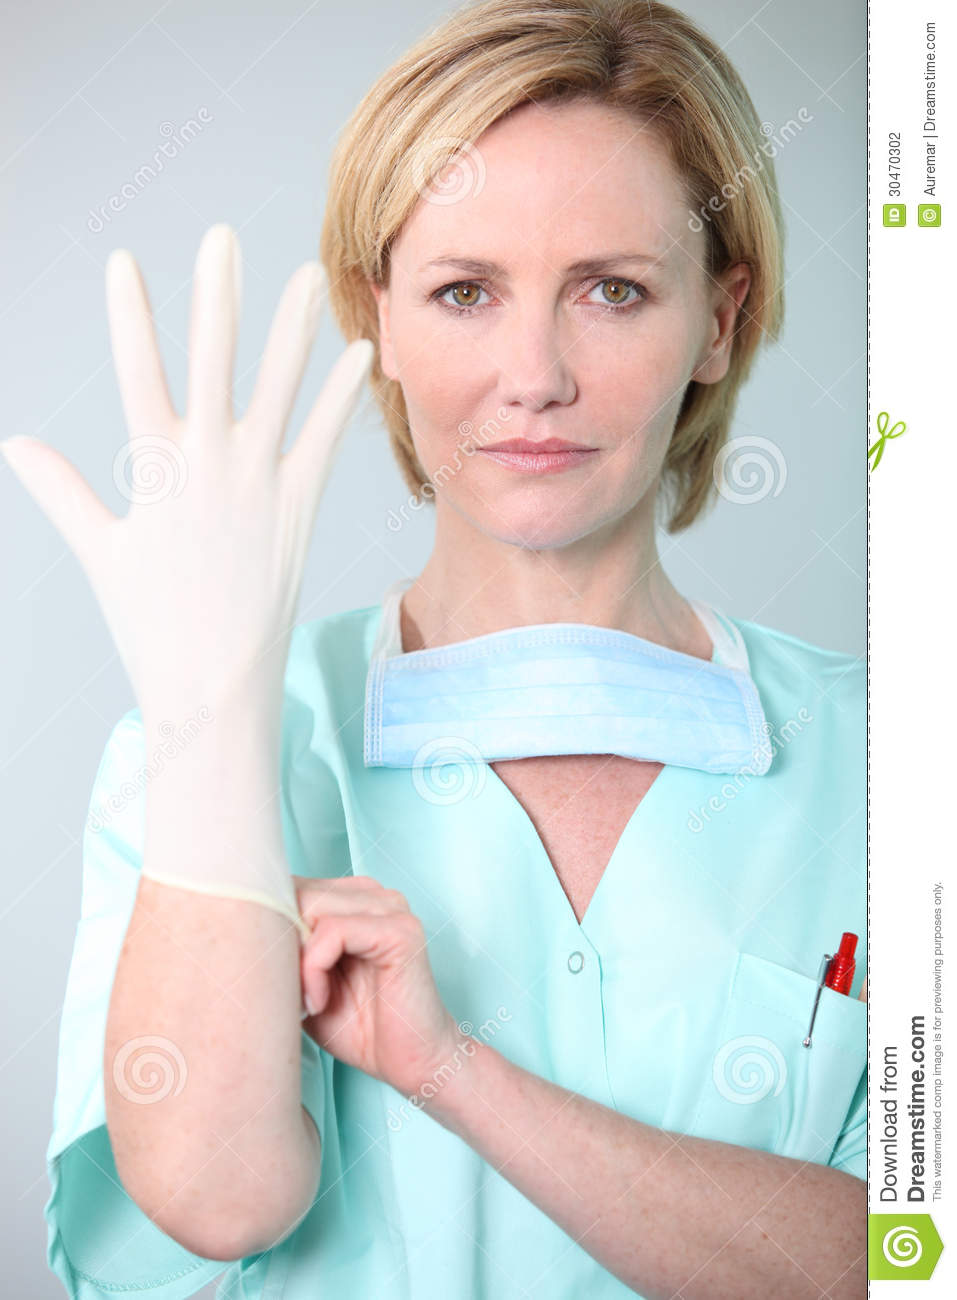 Thankfulness man, latex glove hand rash cure